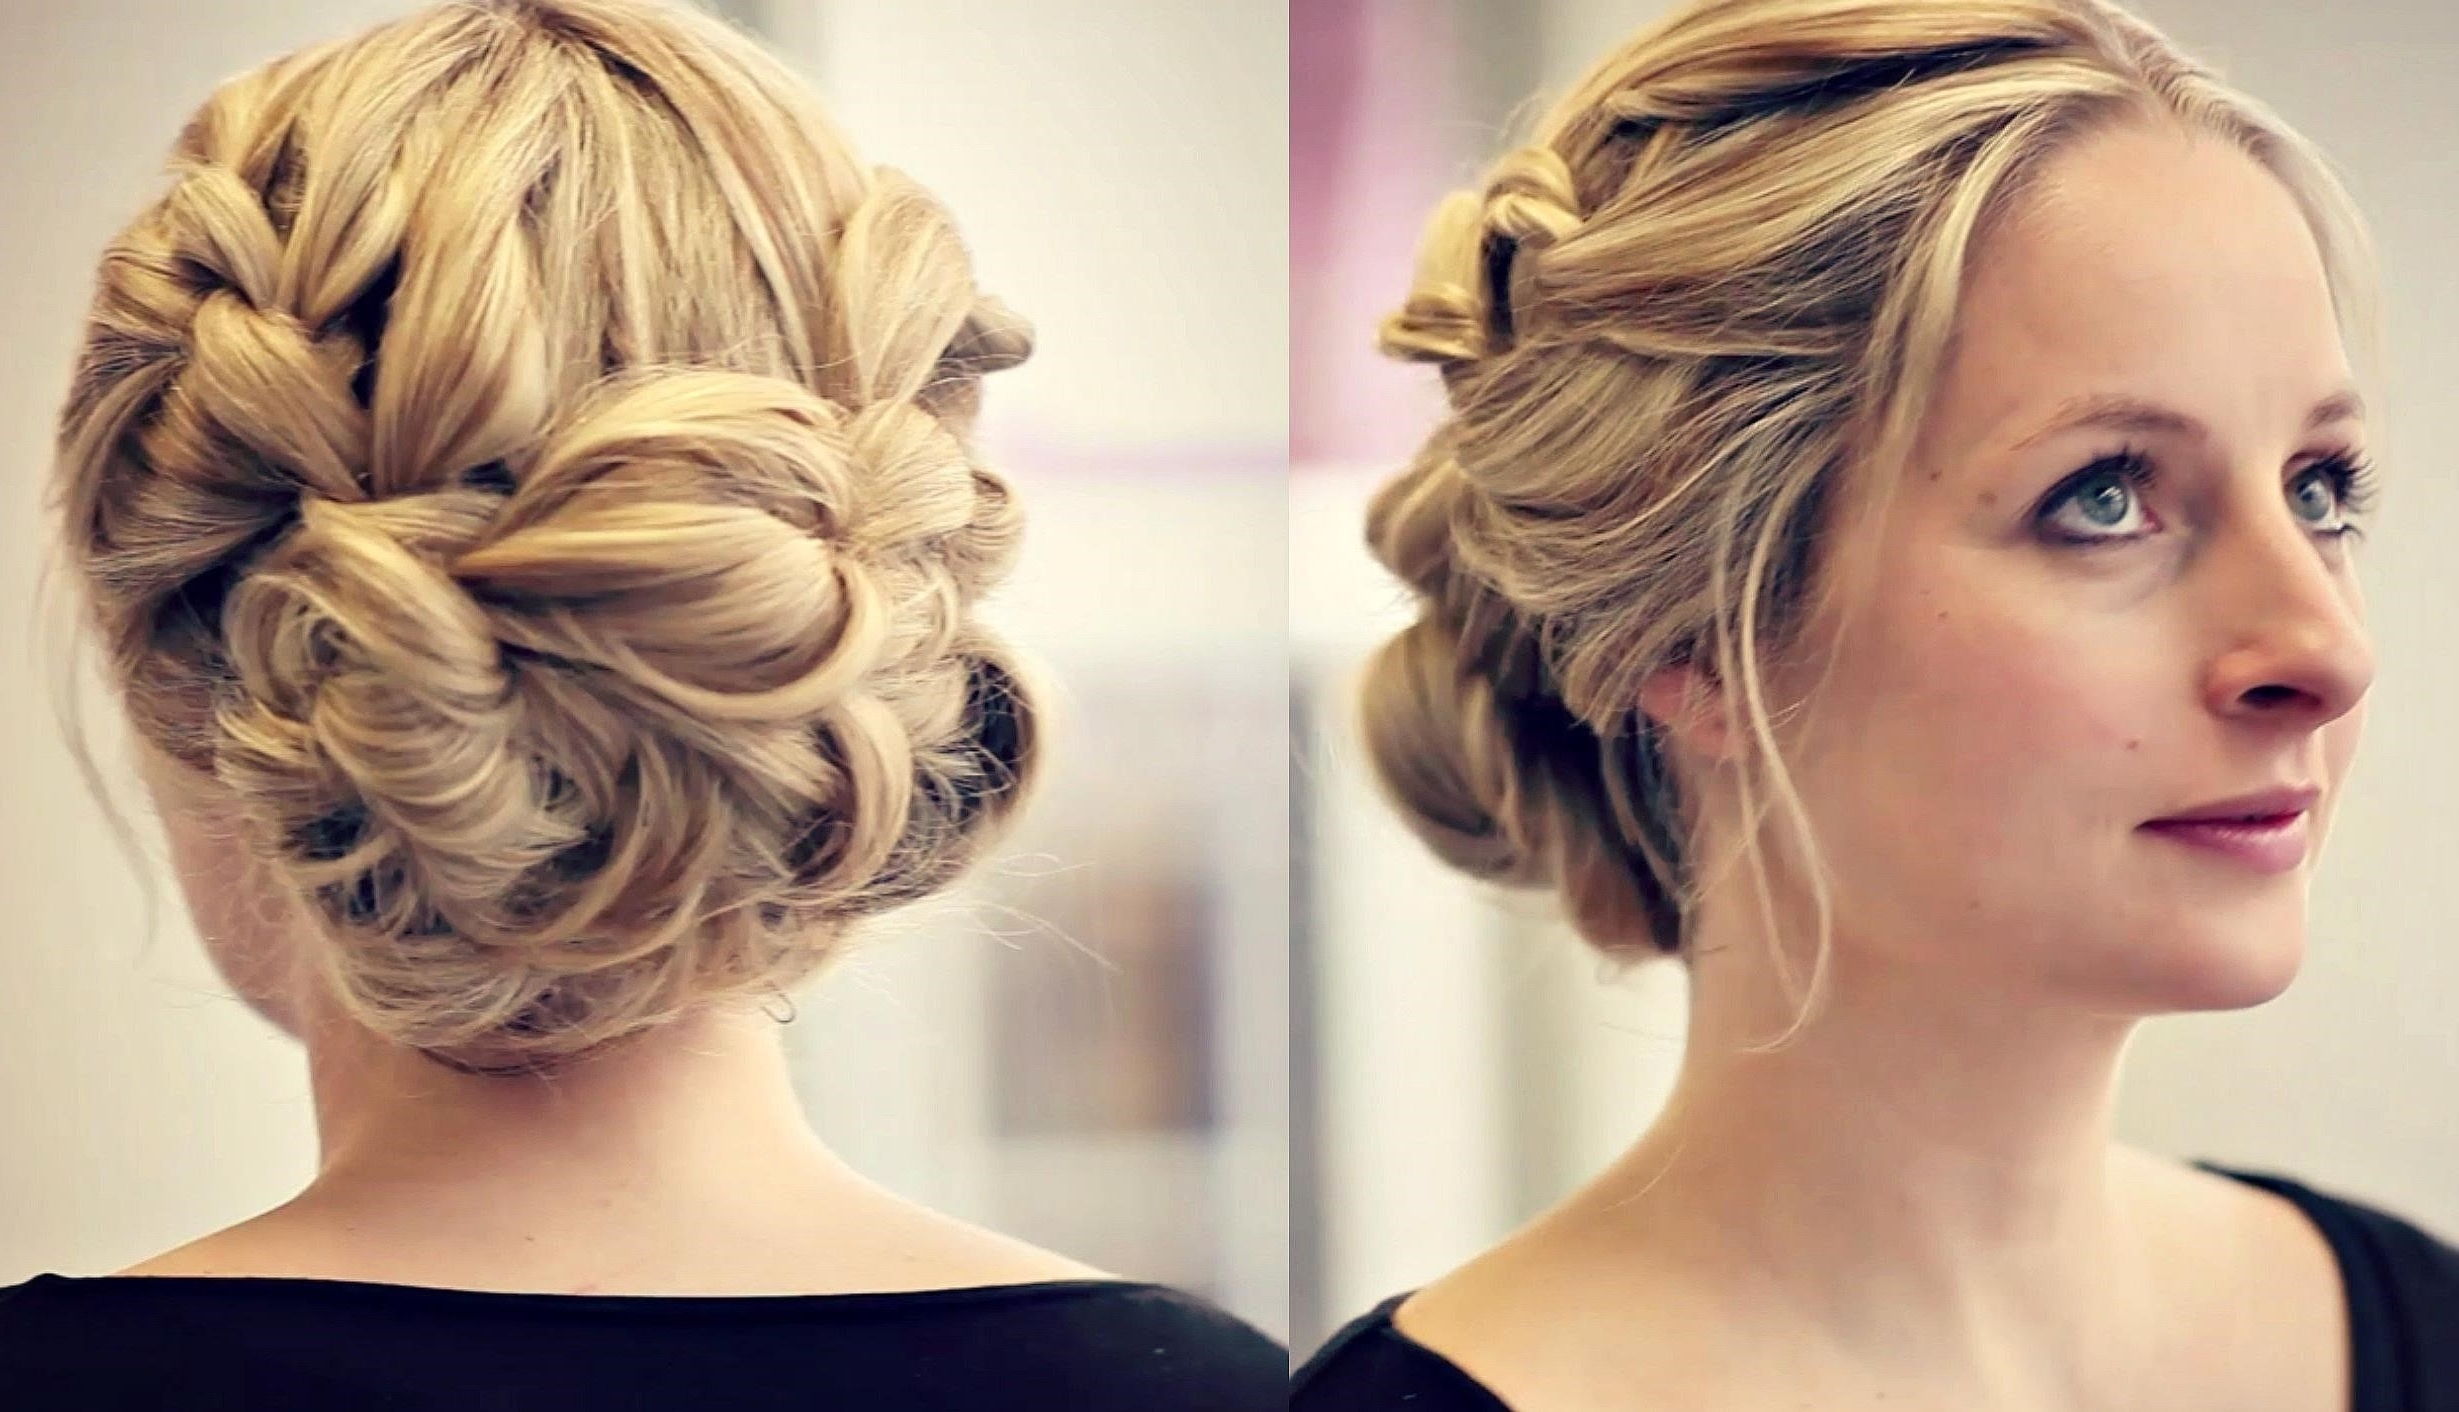 Wedding Hairstyles For Brides With Short Hair | Justswimfl With Regard To Updo Hairstyles For Short Hair For Wedding (View 14 of 15)